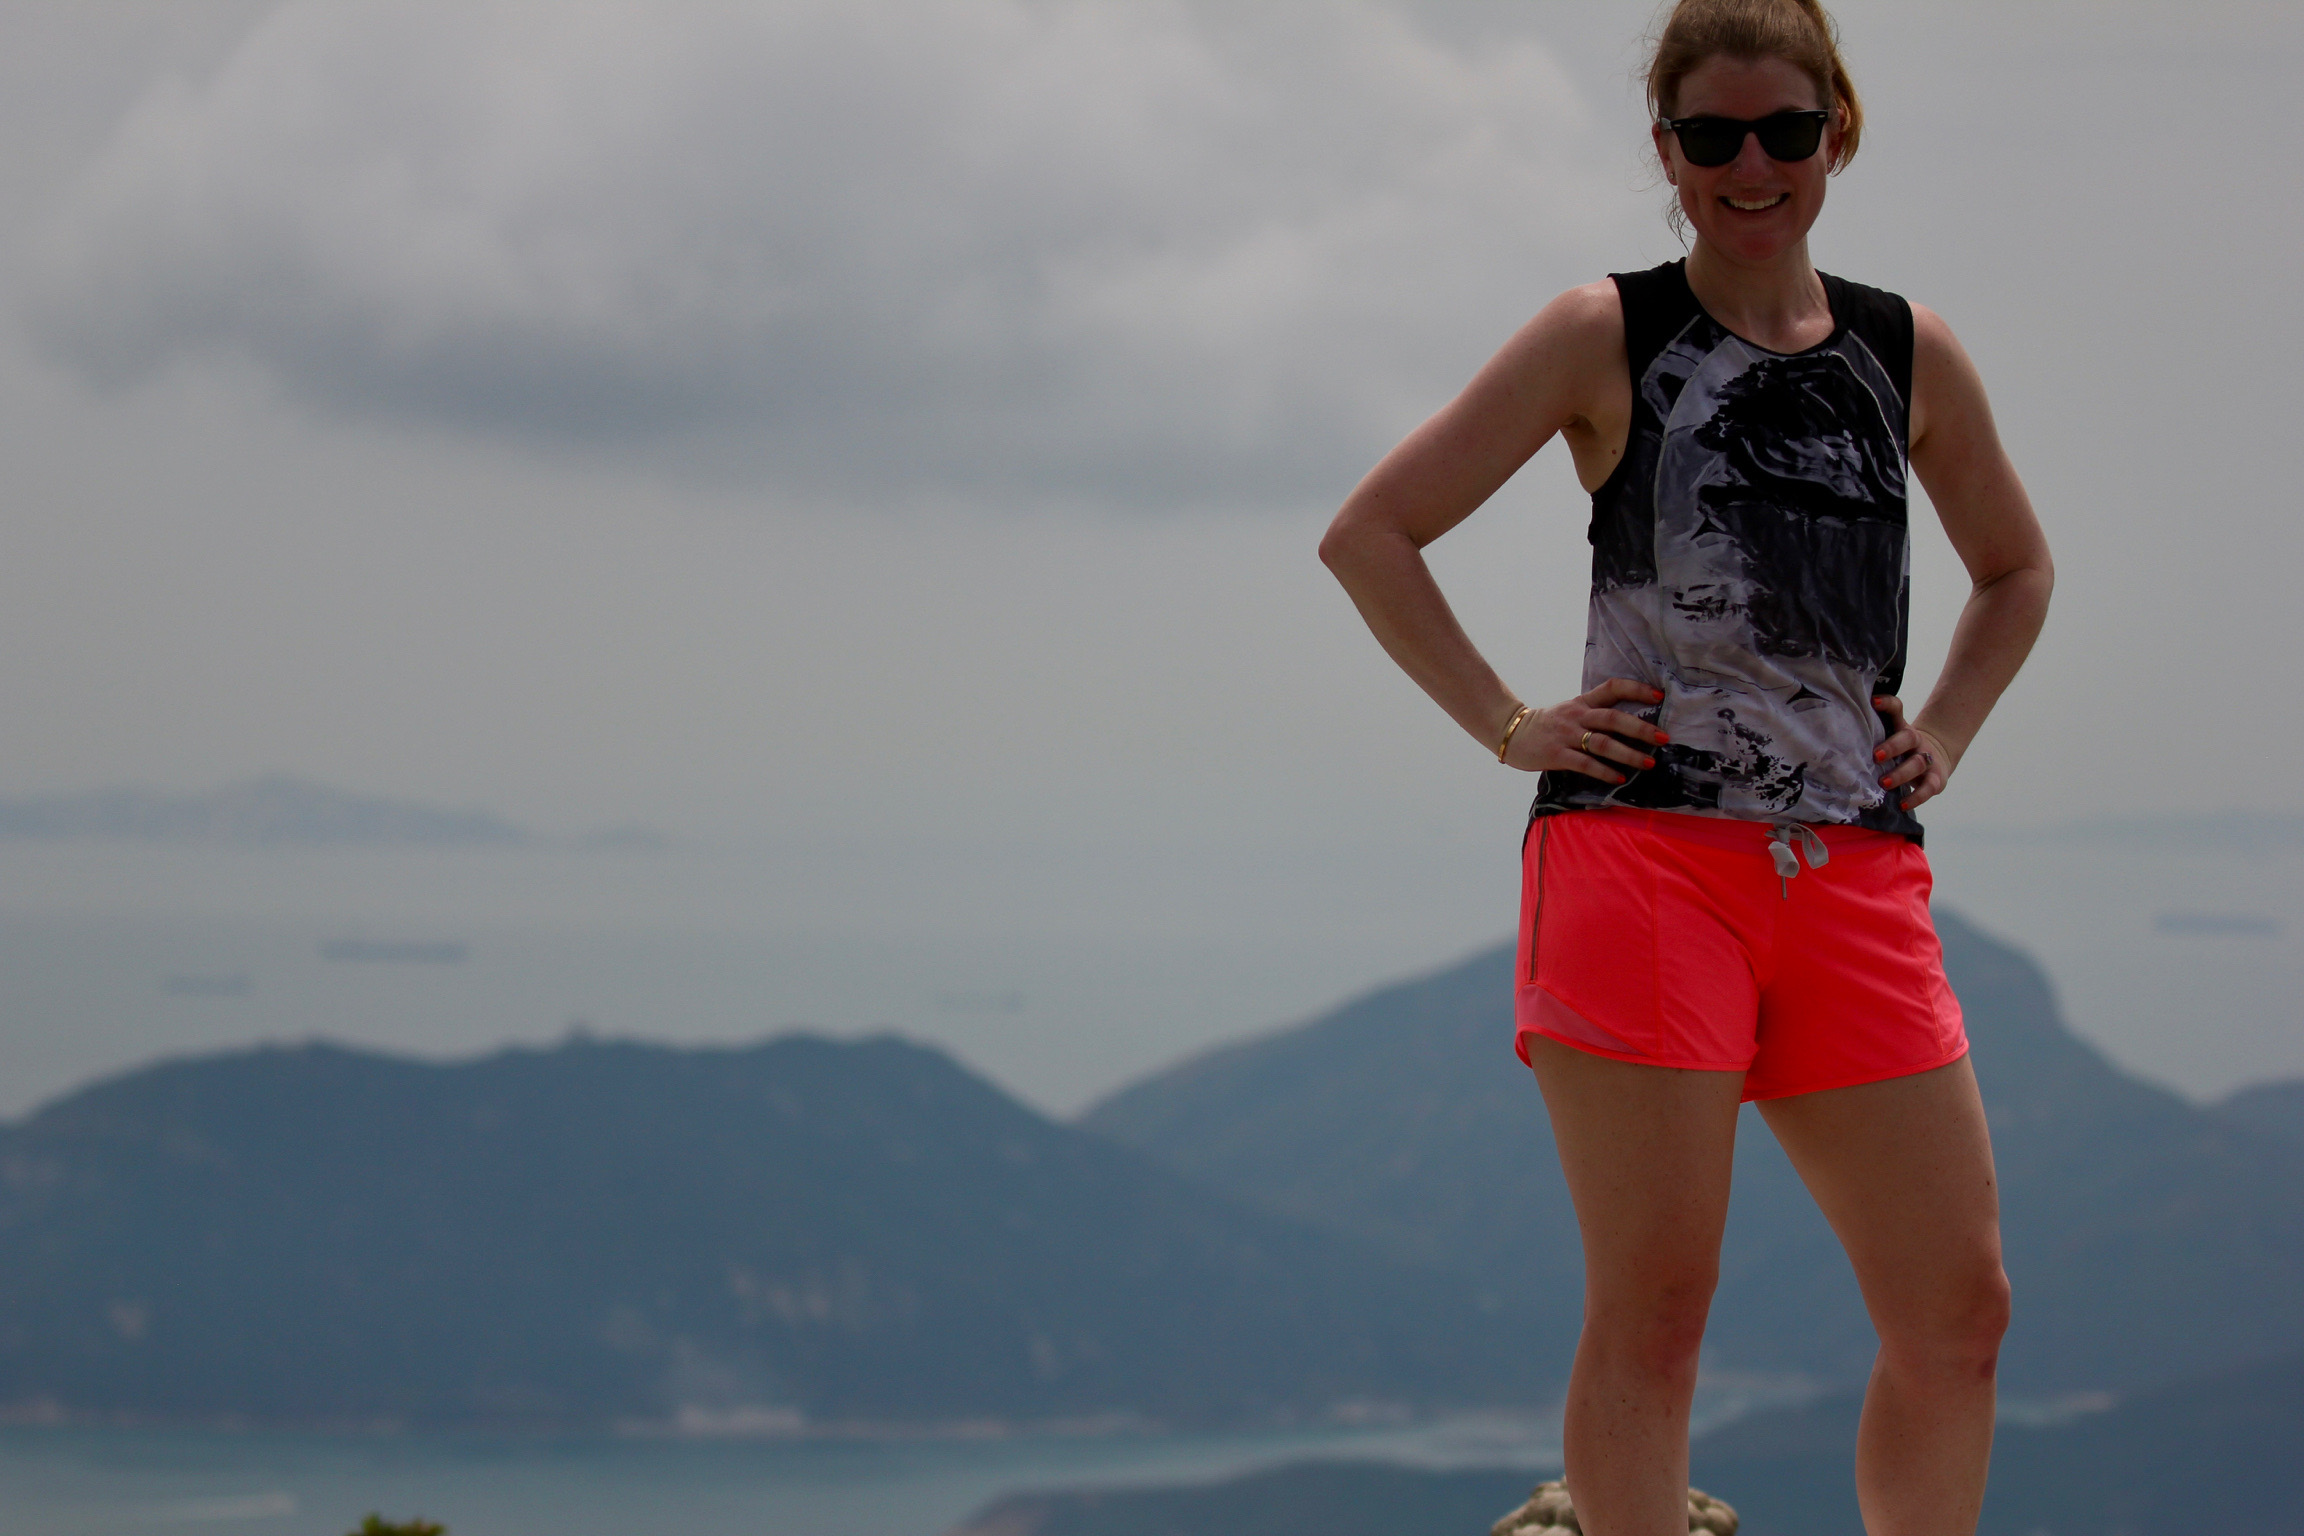 My workout clothes served me as well climbing The Peak in Hong Kong as they do in the gym at home!